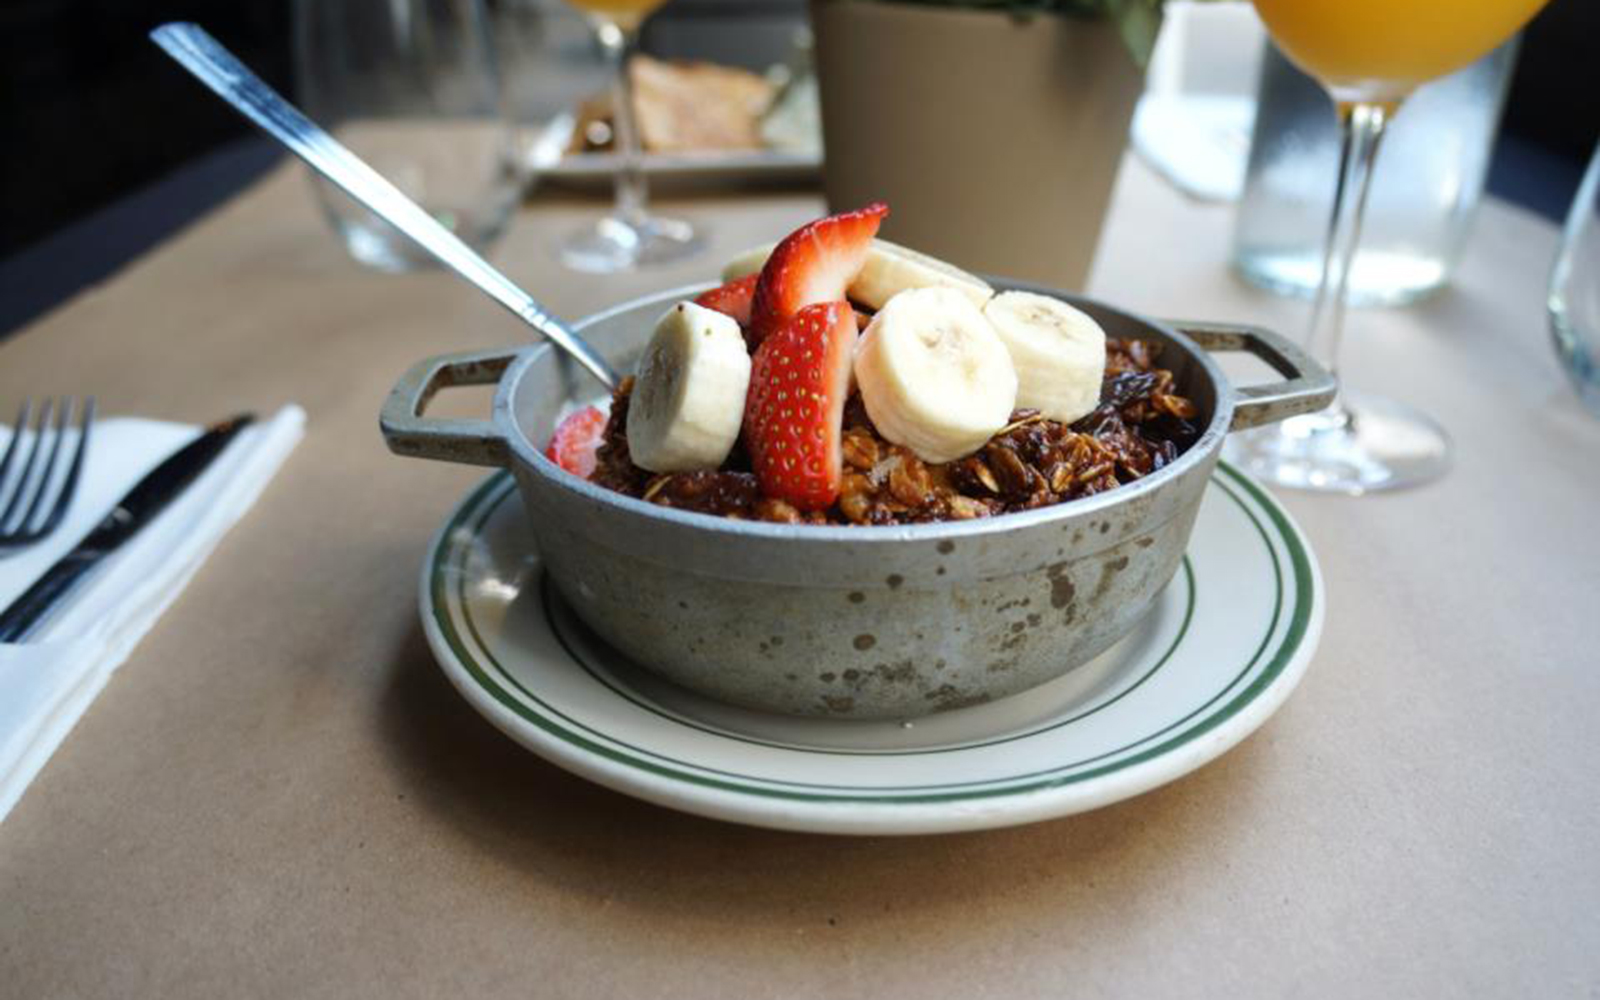 Best Brunch Spots in NYC: Friend Of A Farmer